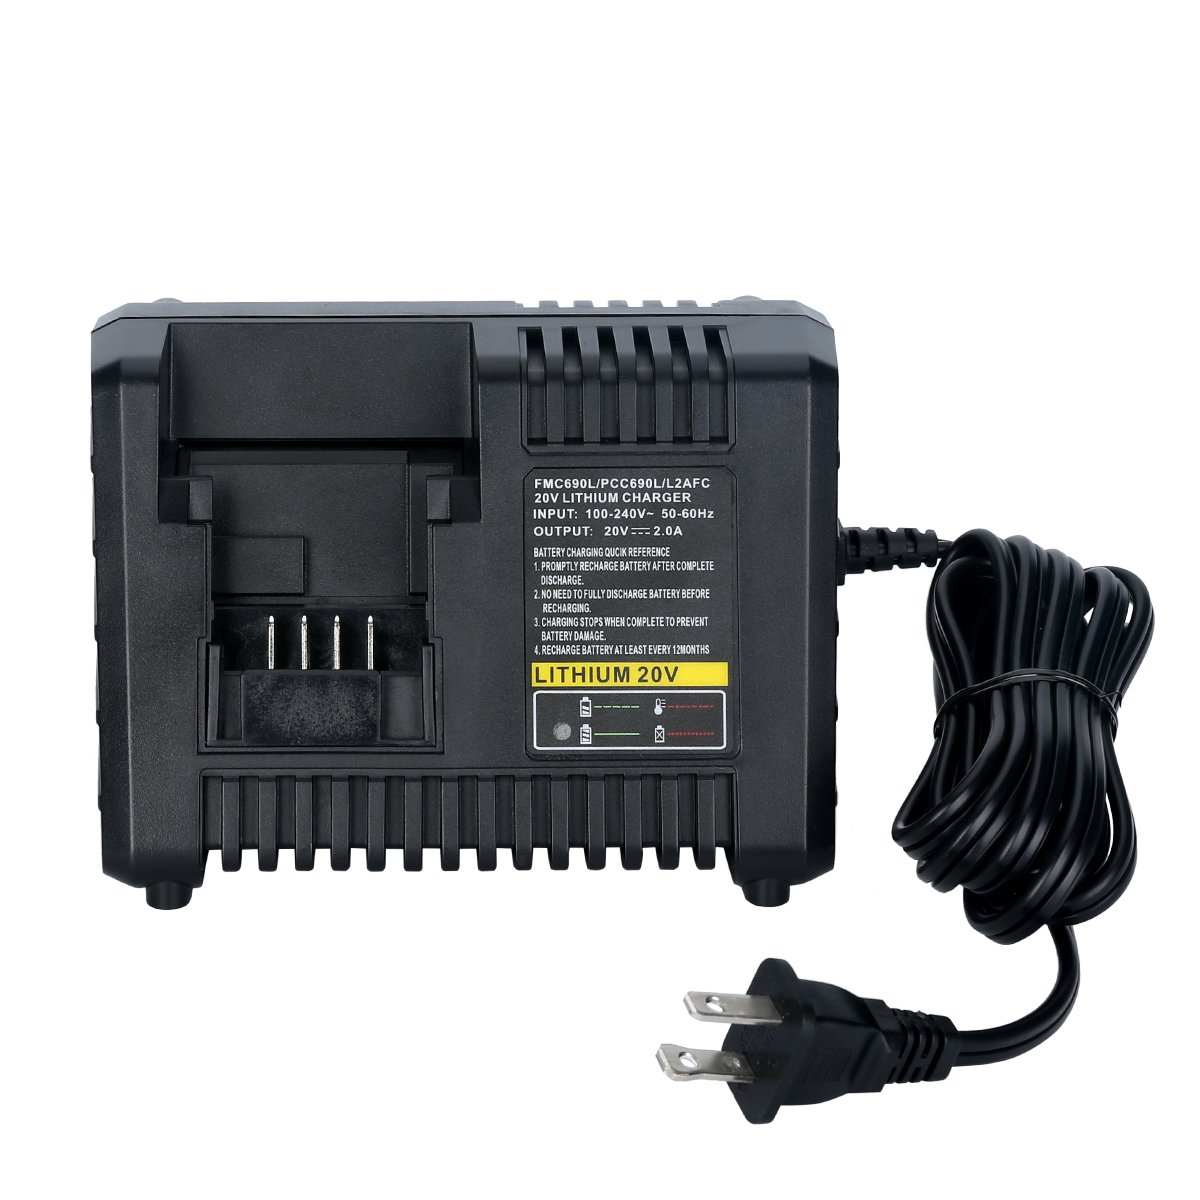 Lasica BDCAC202B 20V Lithium Battery Charger for Black and Decker 20V Lithium-ion Battery and Porter-Cable 20V Lithium-ion Battery LB20 LBX20 LB2X4020 PCC682L PCC600